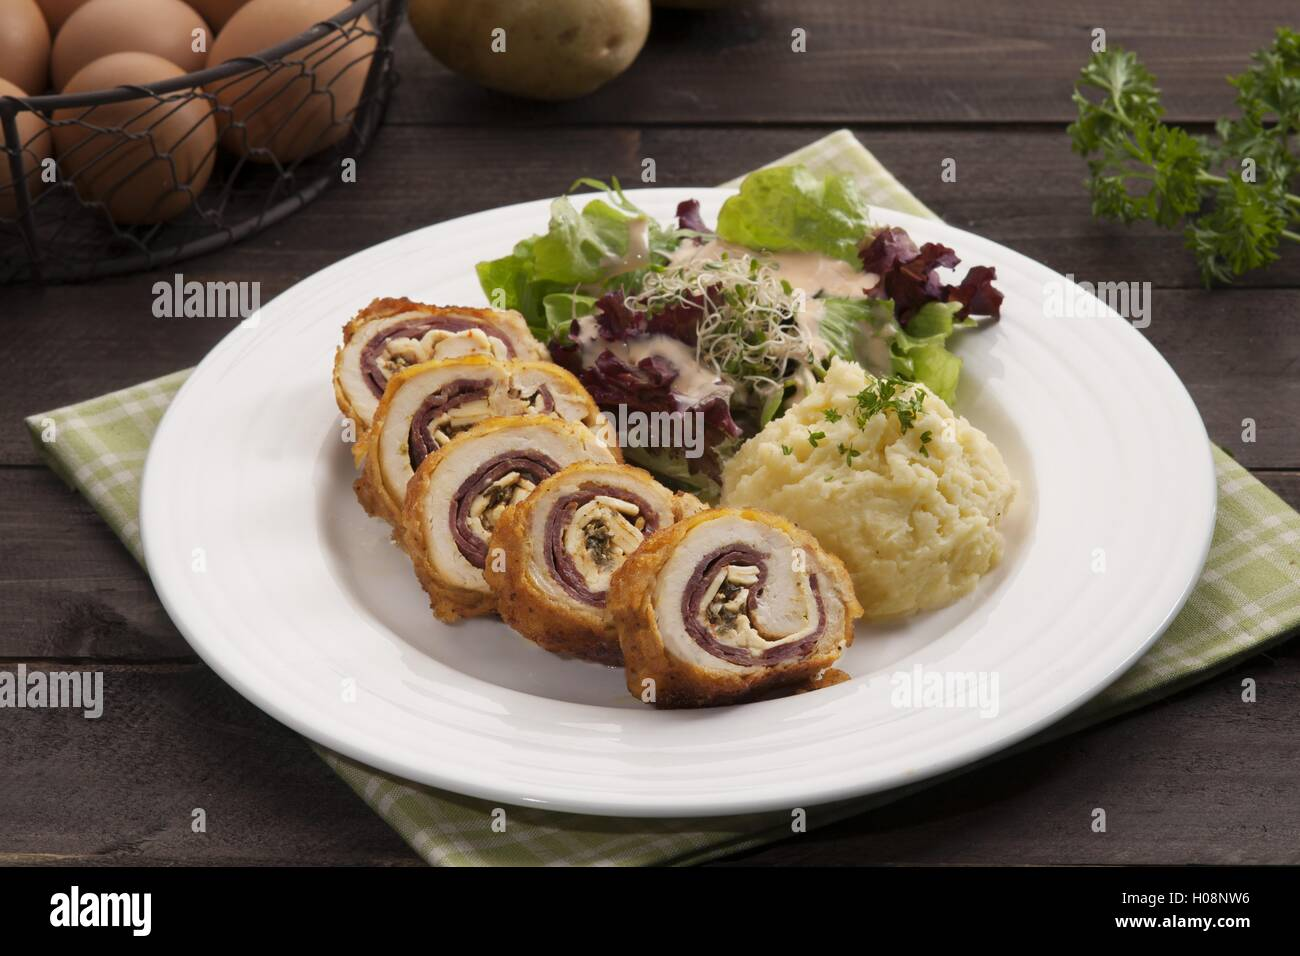 Plate of Ayam with potato and herbs on the table in restaurant - Stock Image